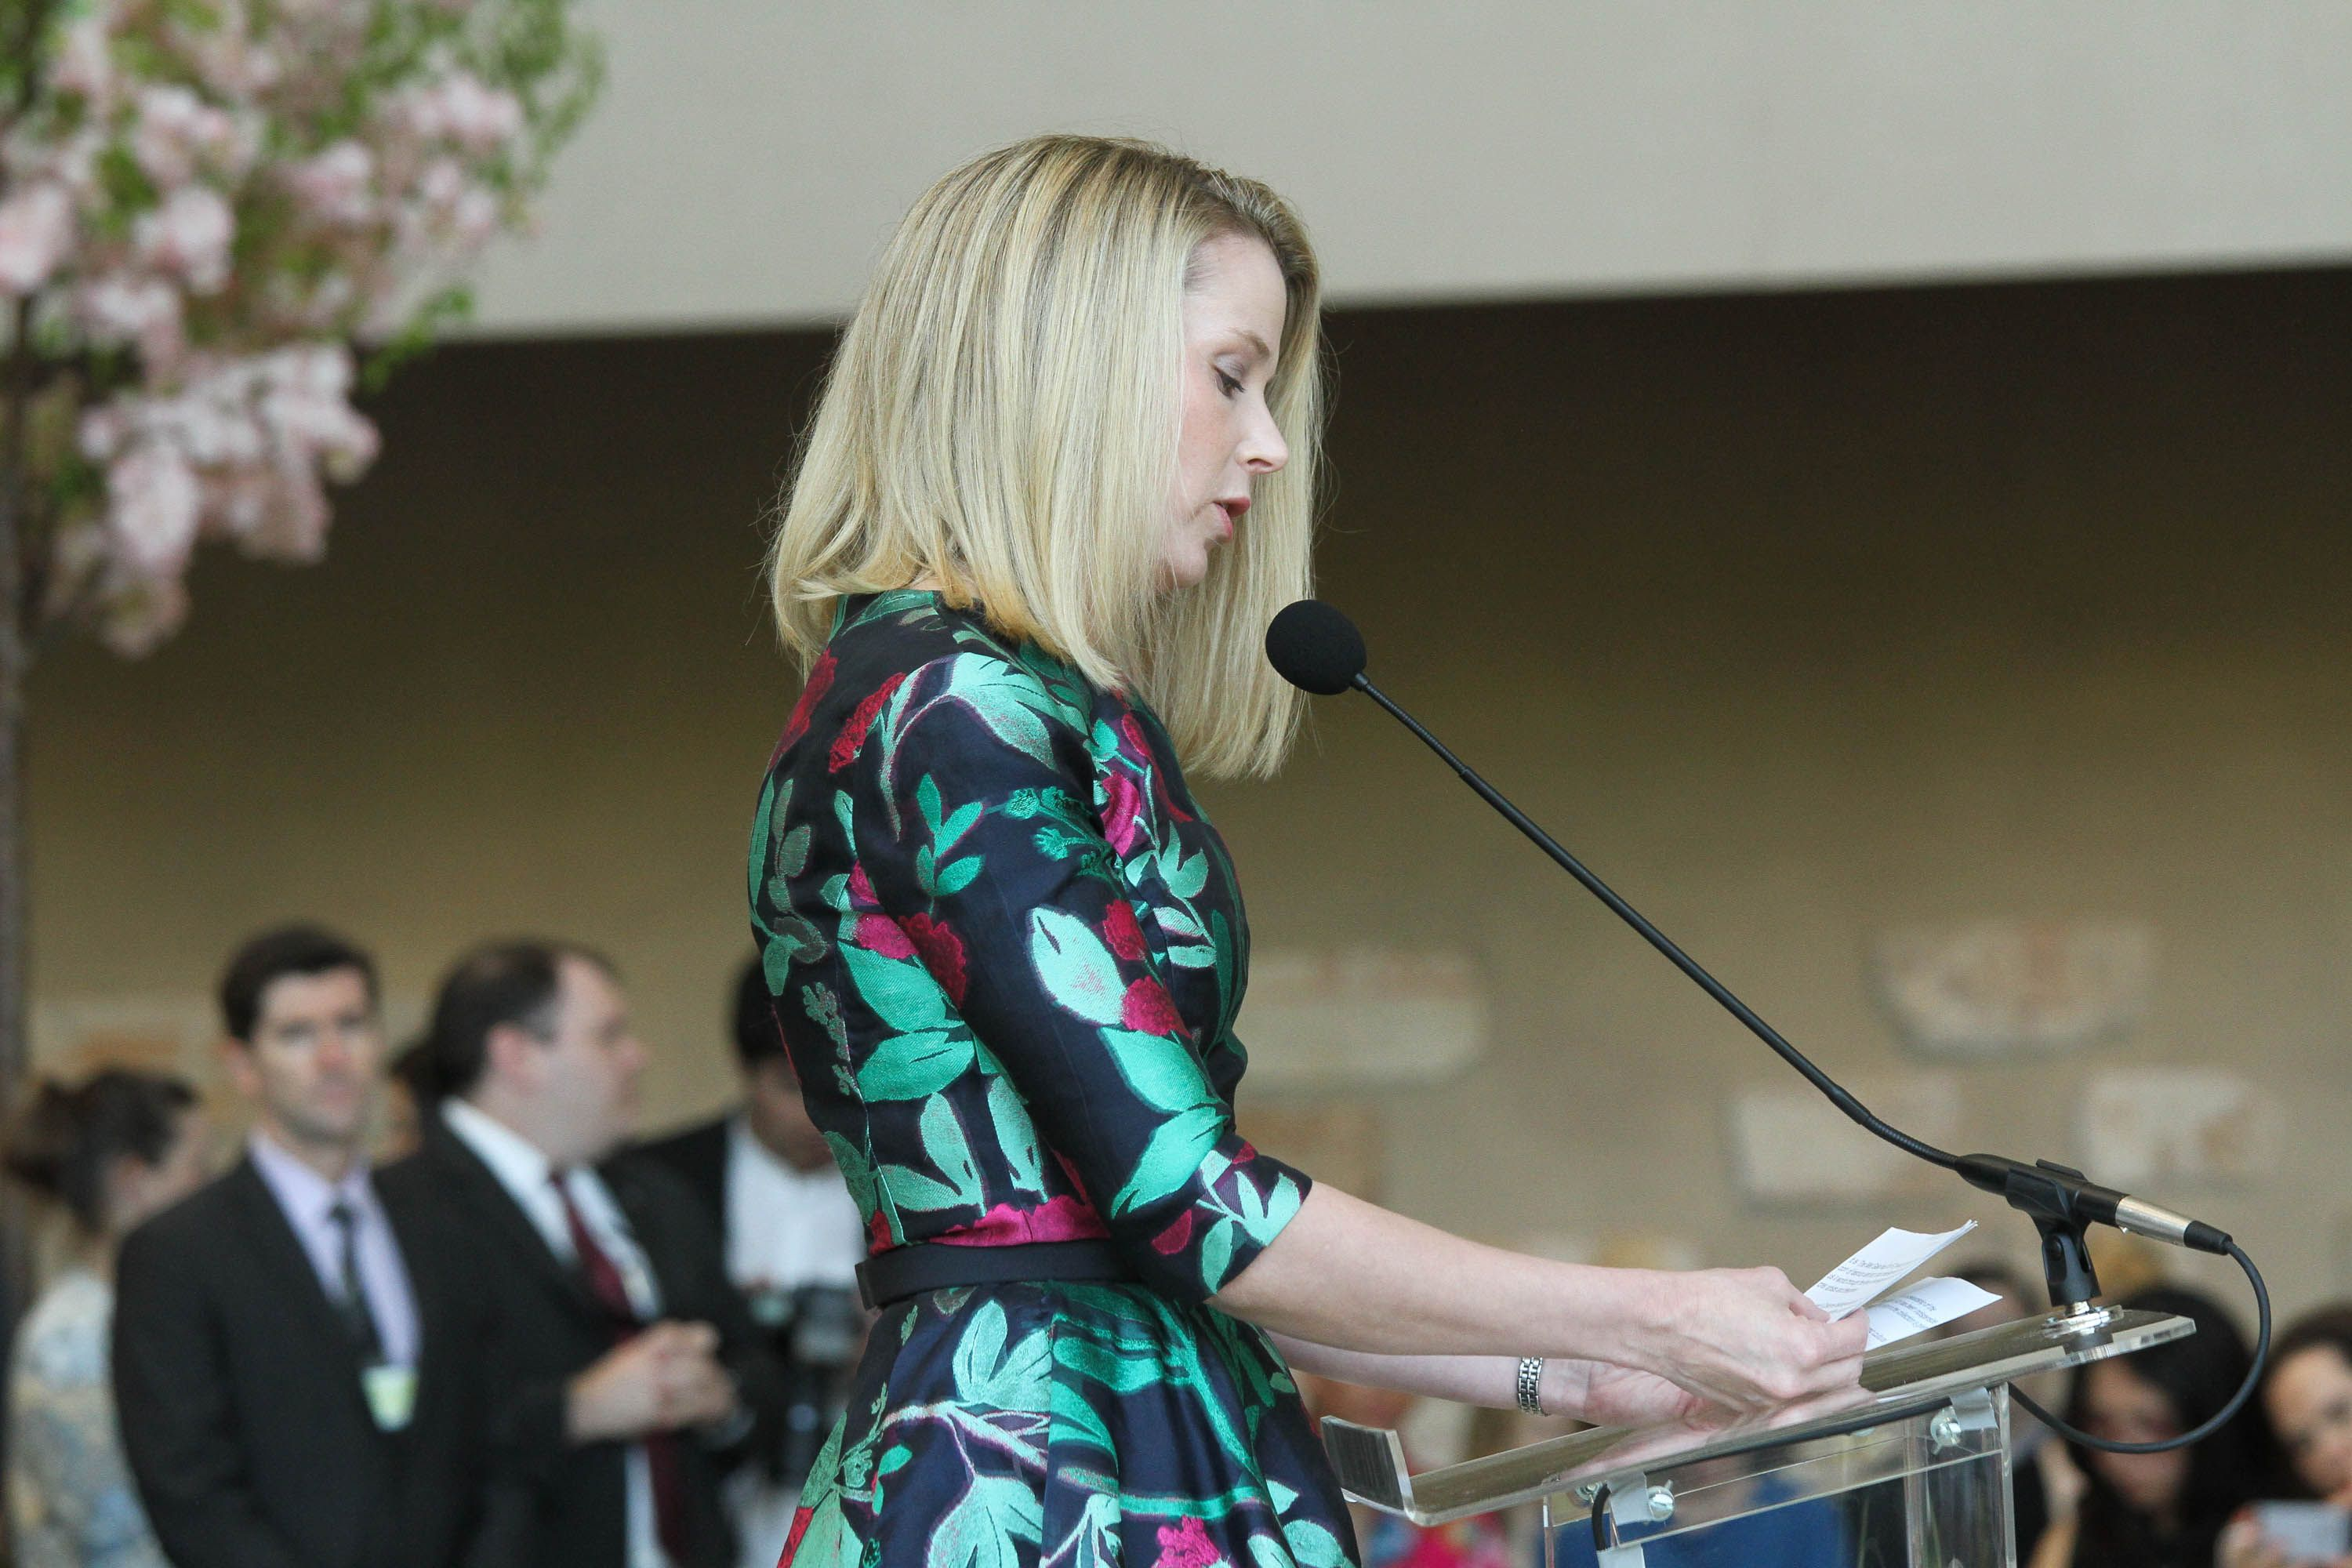 Marissa mayer president and ceo of yahoo attends china